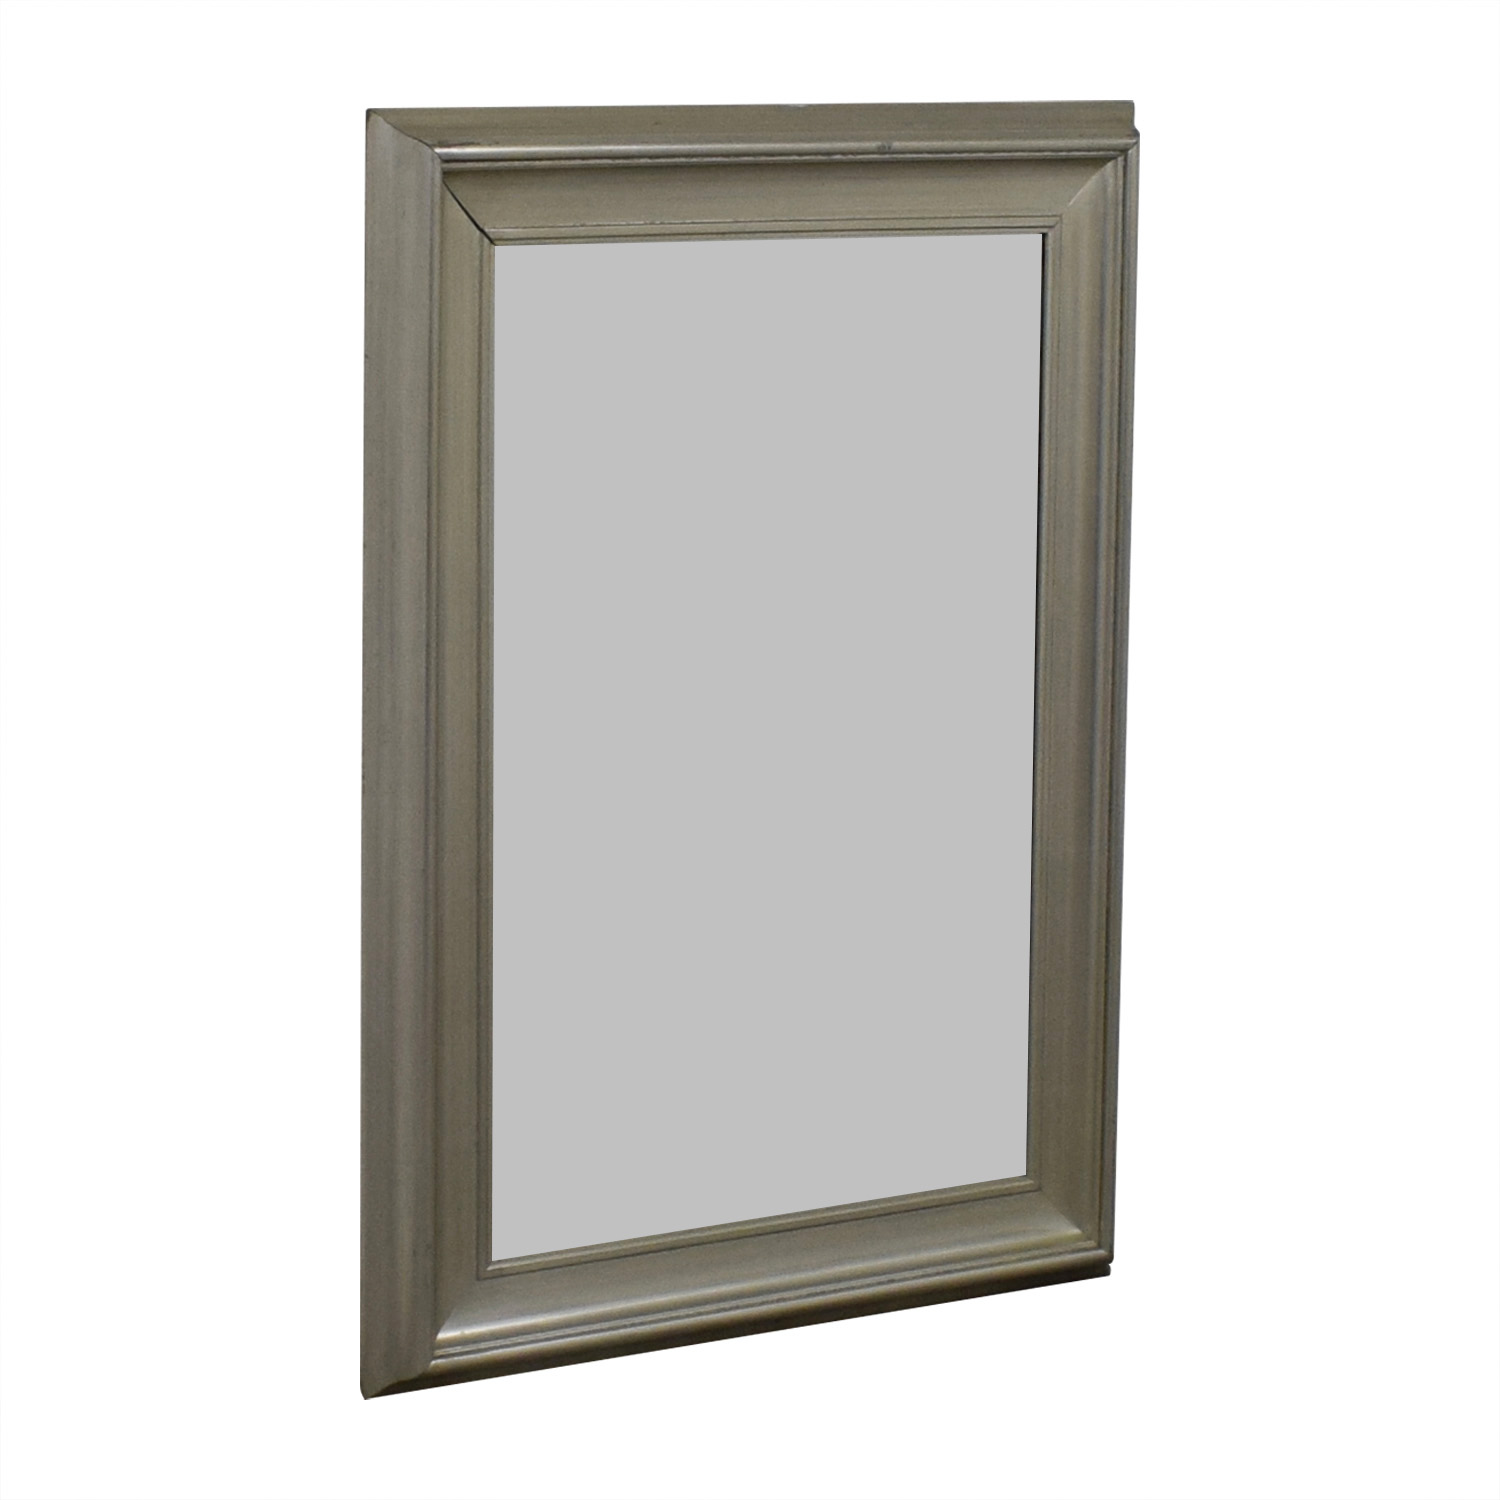 Pottery Barn Pottery Barn Distressed Antique Finish Mirror